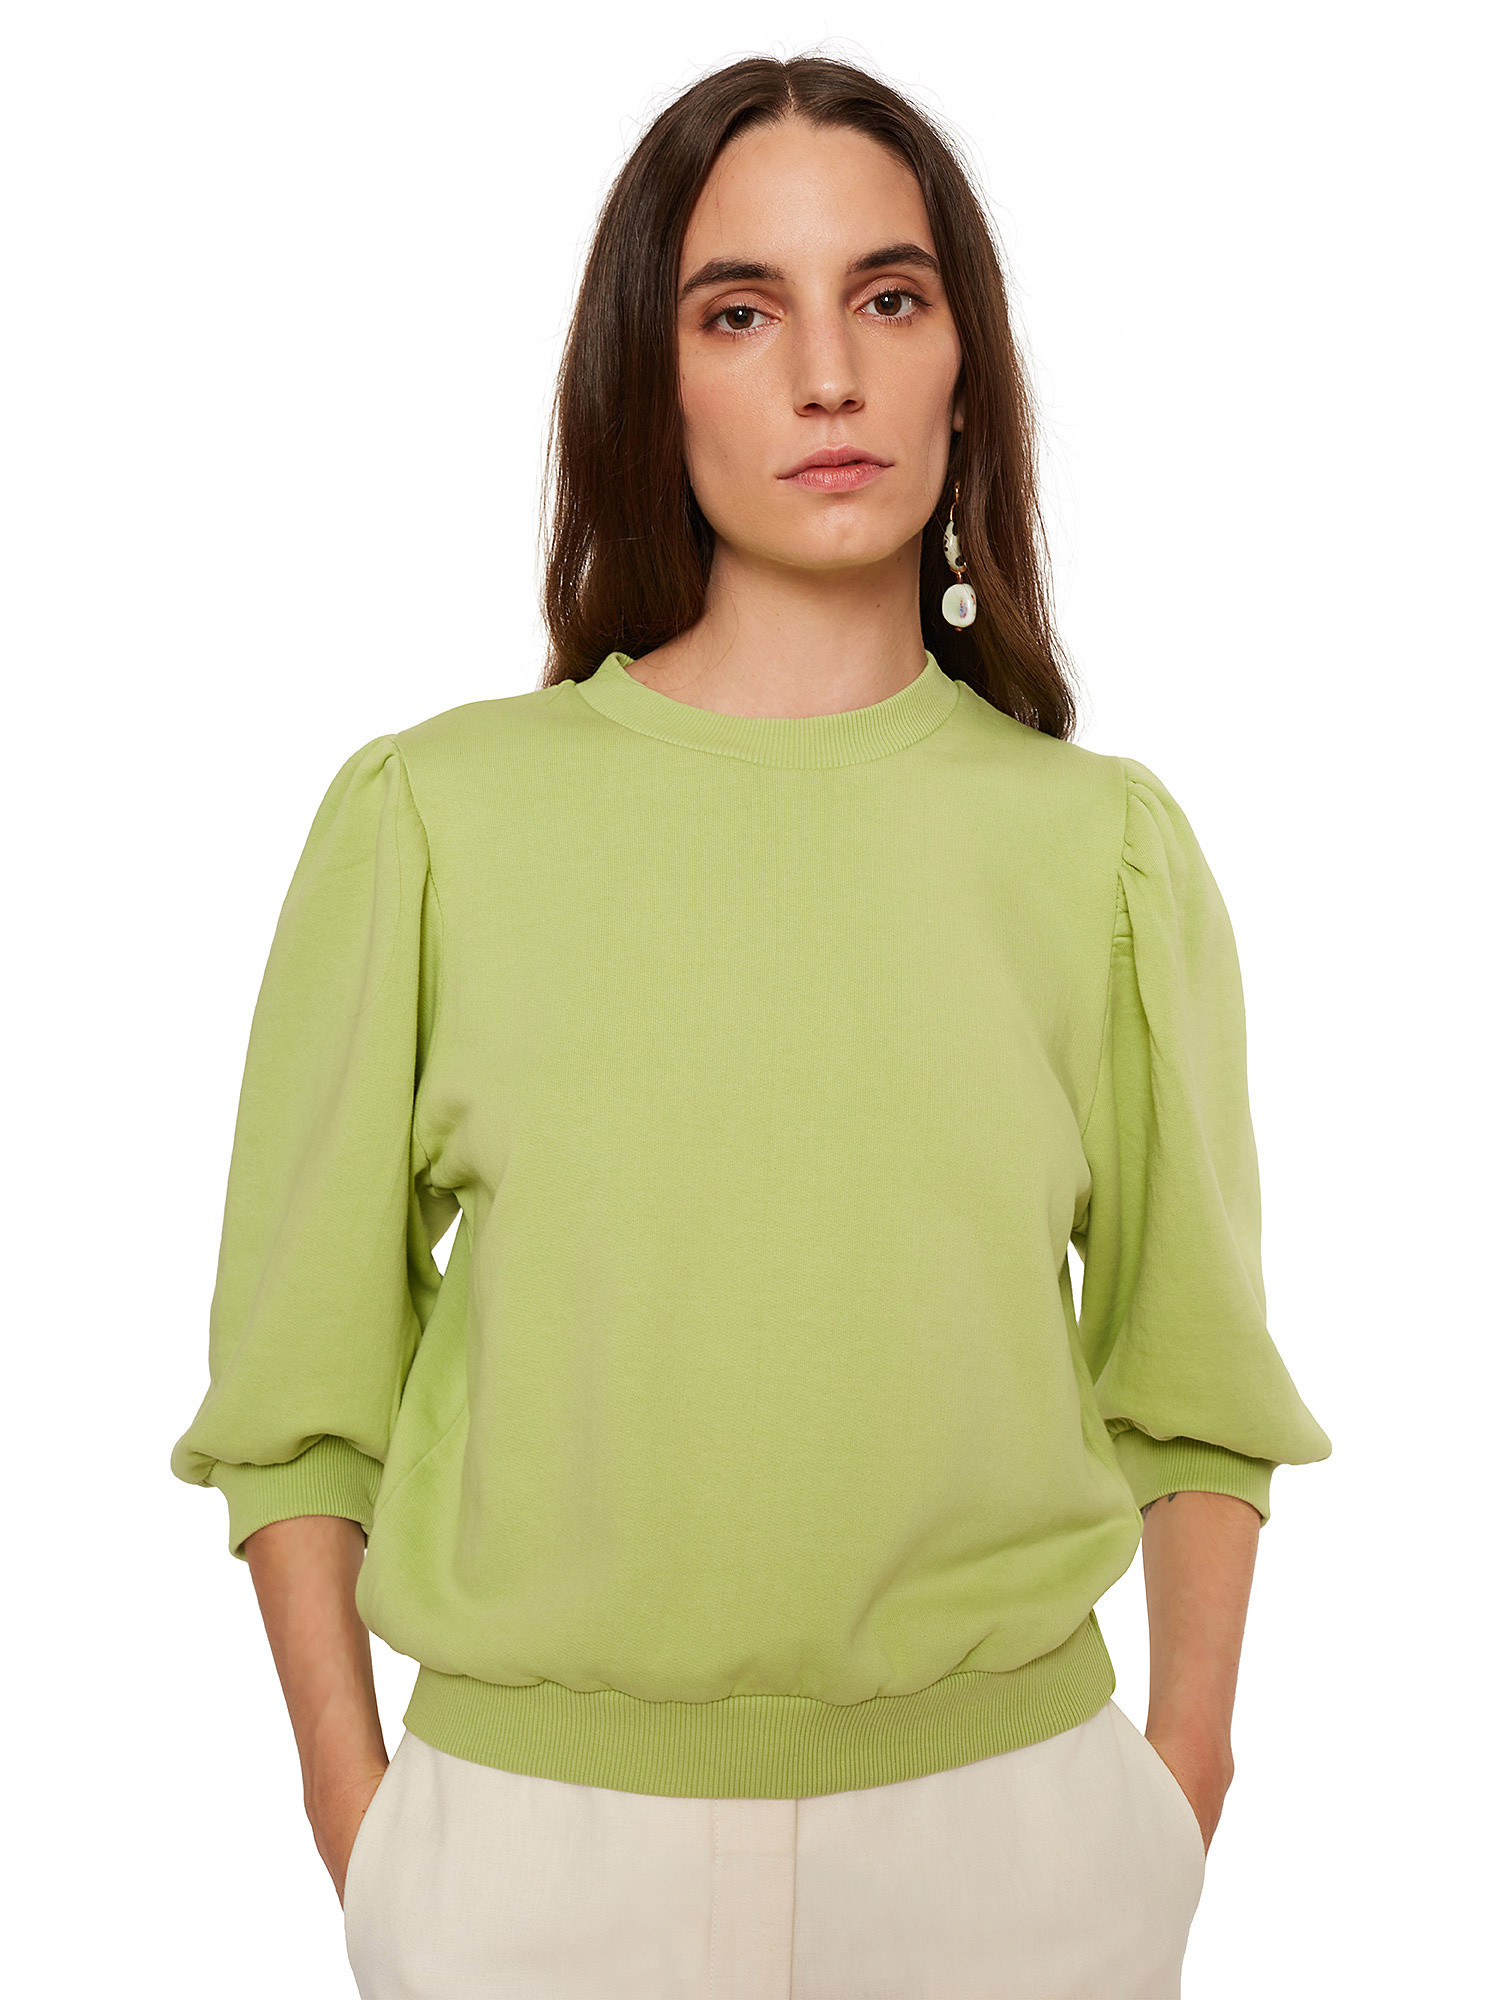 Maglia donna in cotone, Verde lime, large image number 2